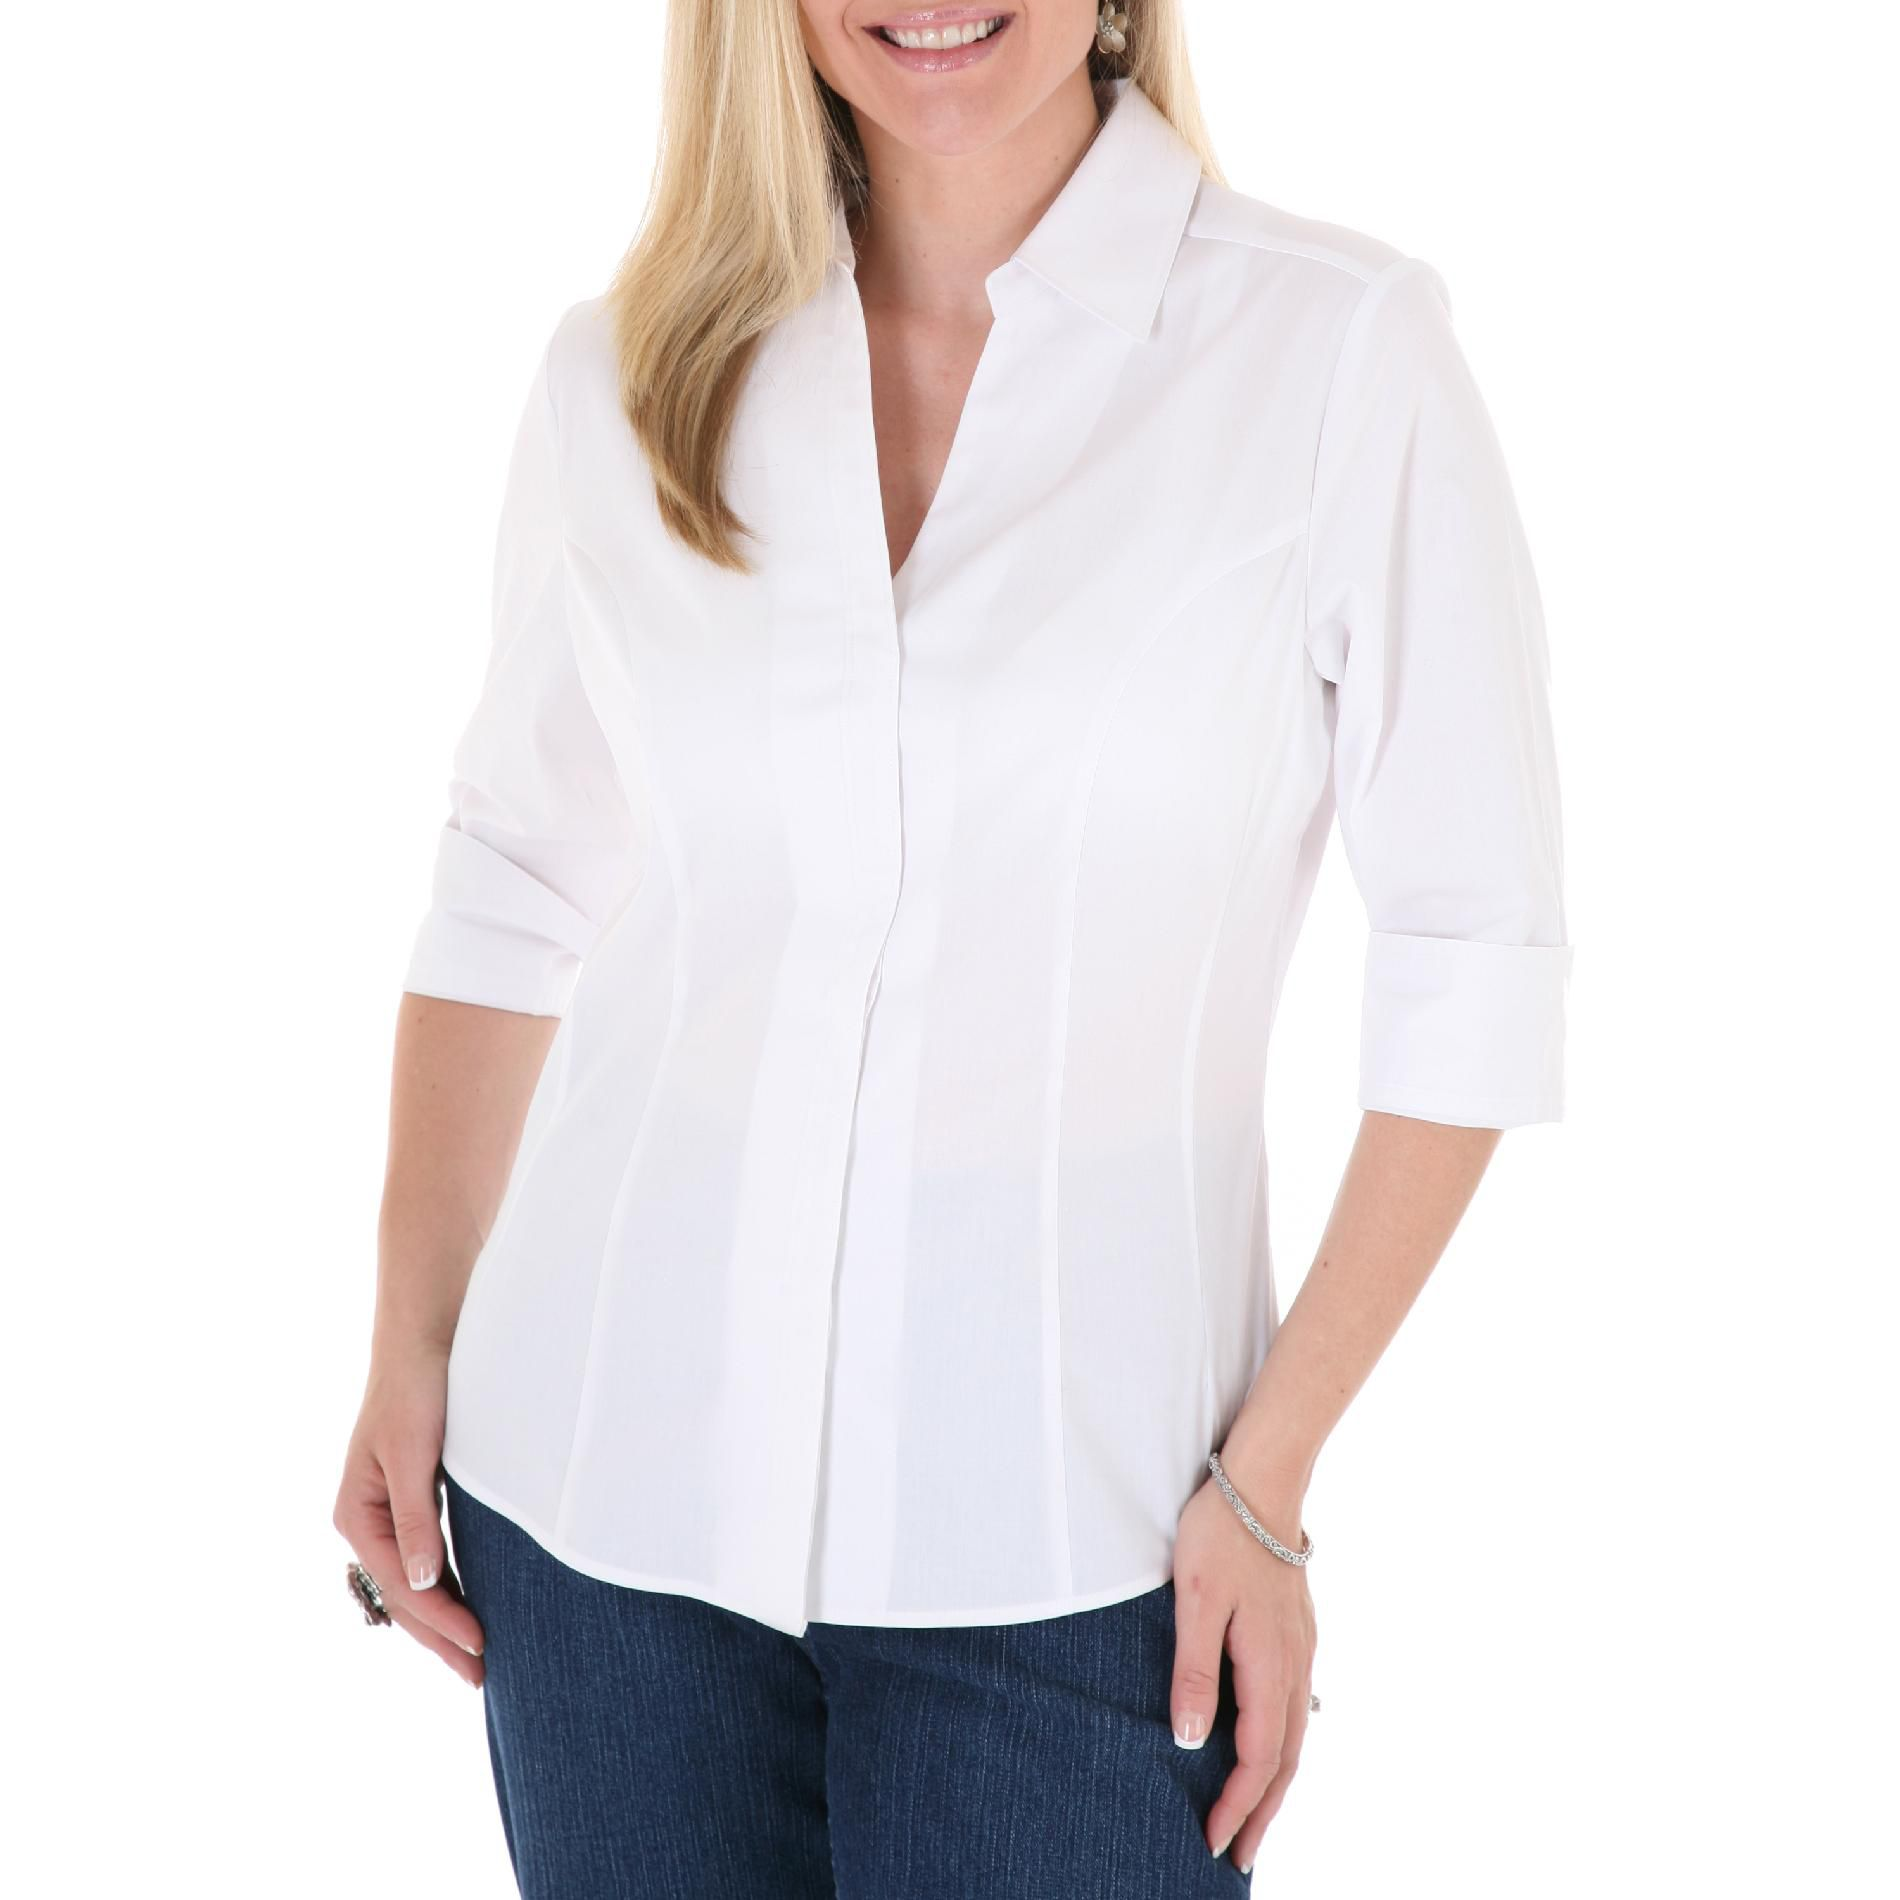 Rider Women's Top 'Allison' ¾ Sleeve Artic White at Kmart.com